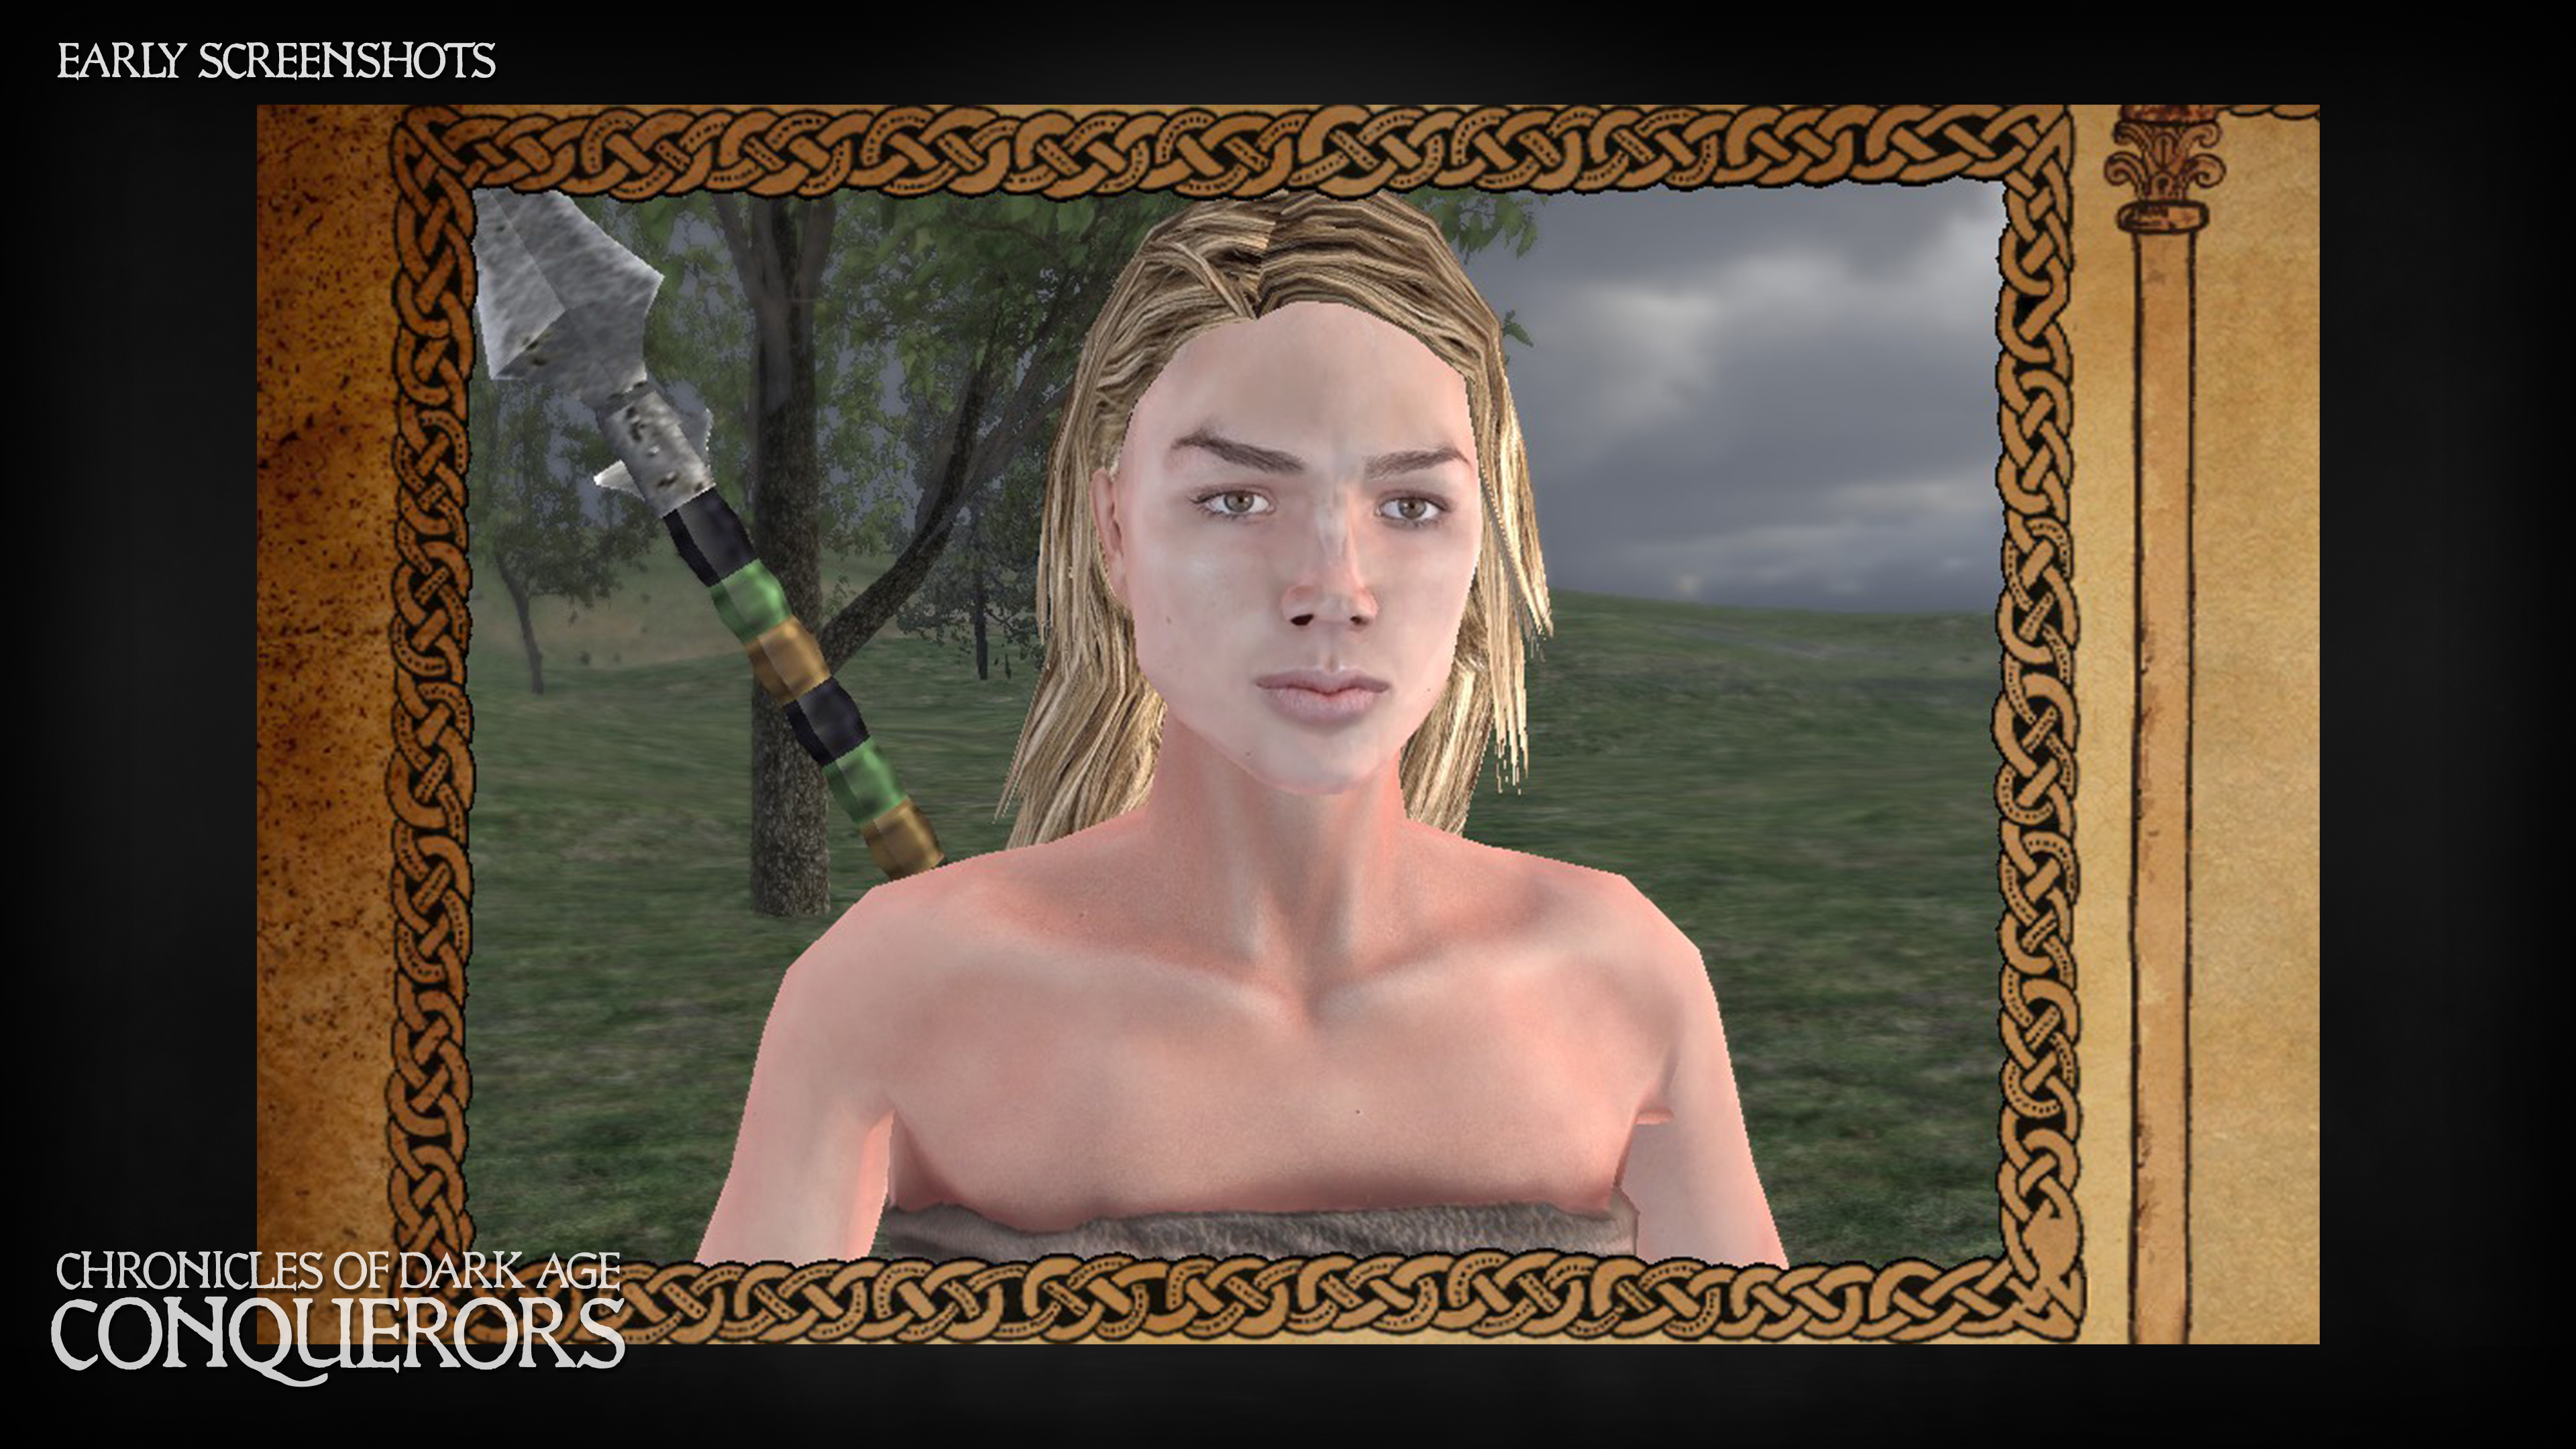 New head model and texture - female